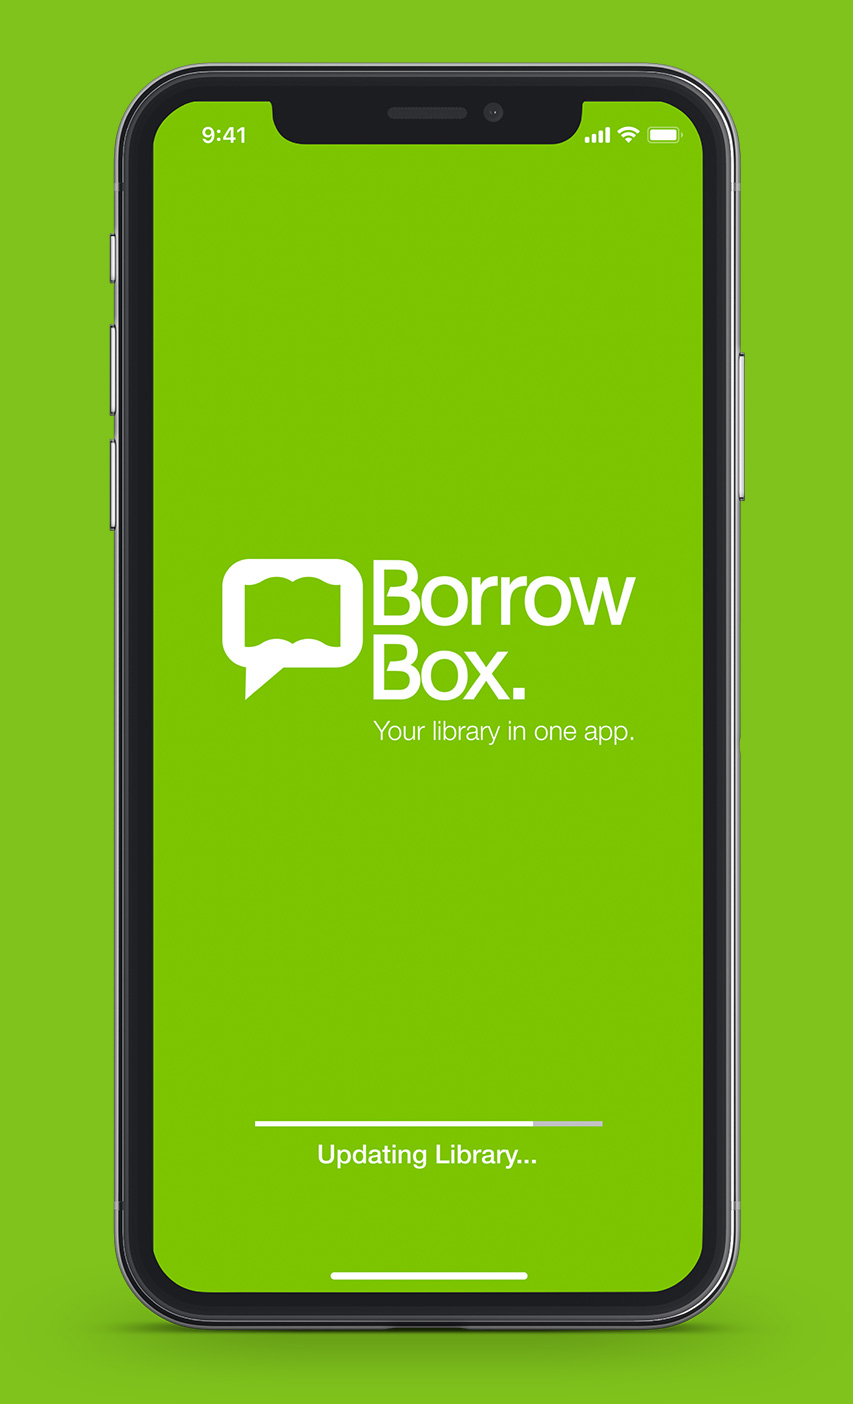 BorrowBox – Your library in one app